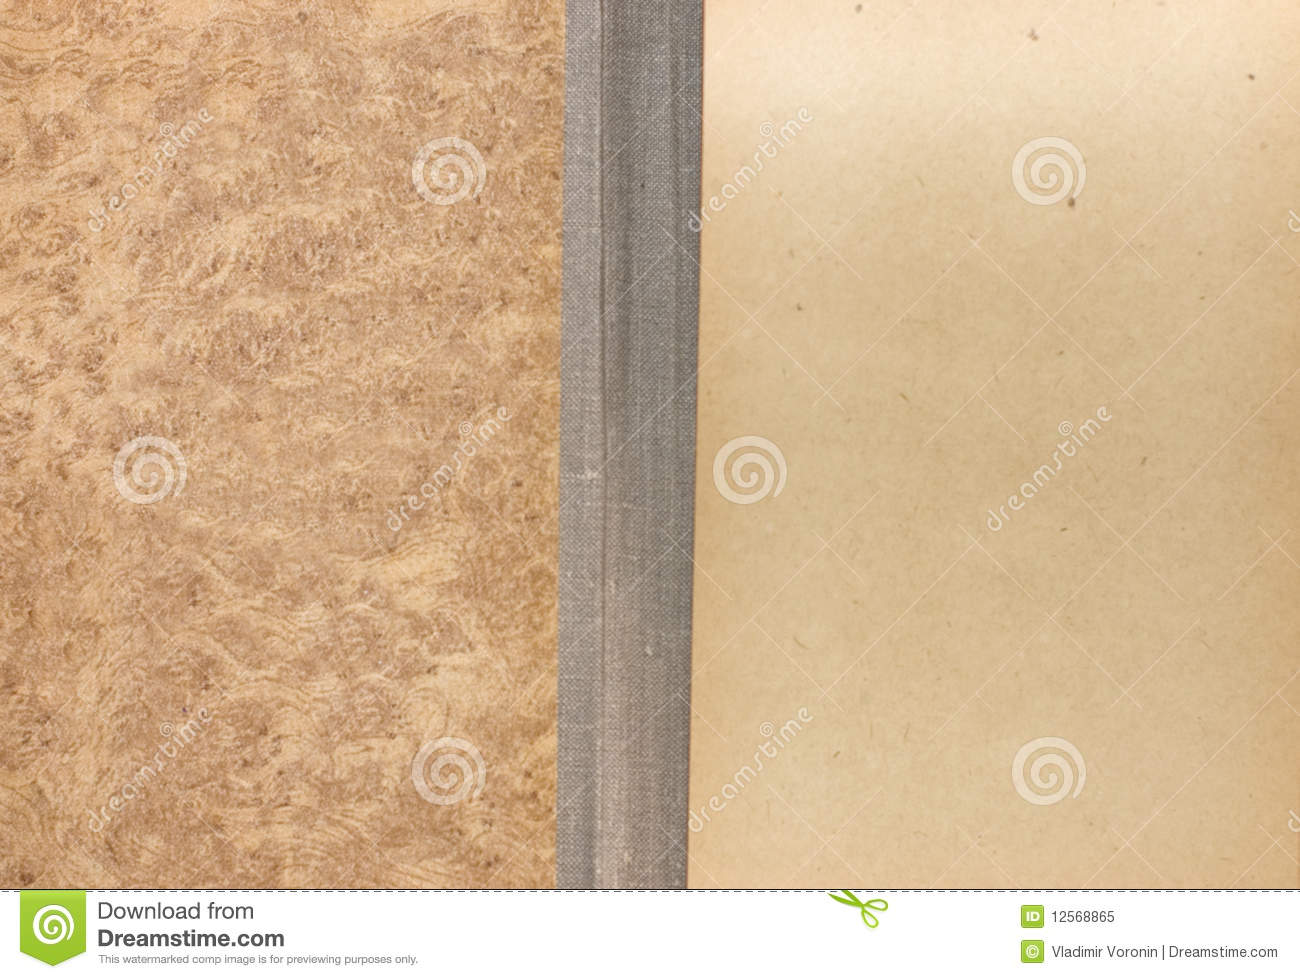 Old Book Cover Background ~ Cover of the old book background royalty free stock photo